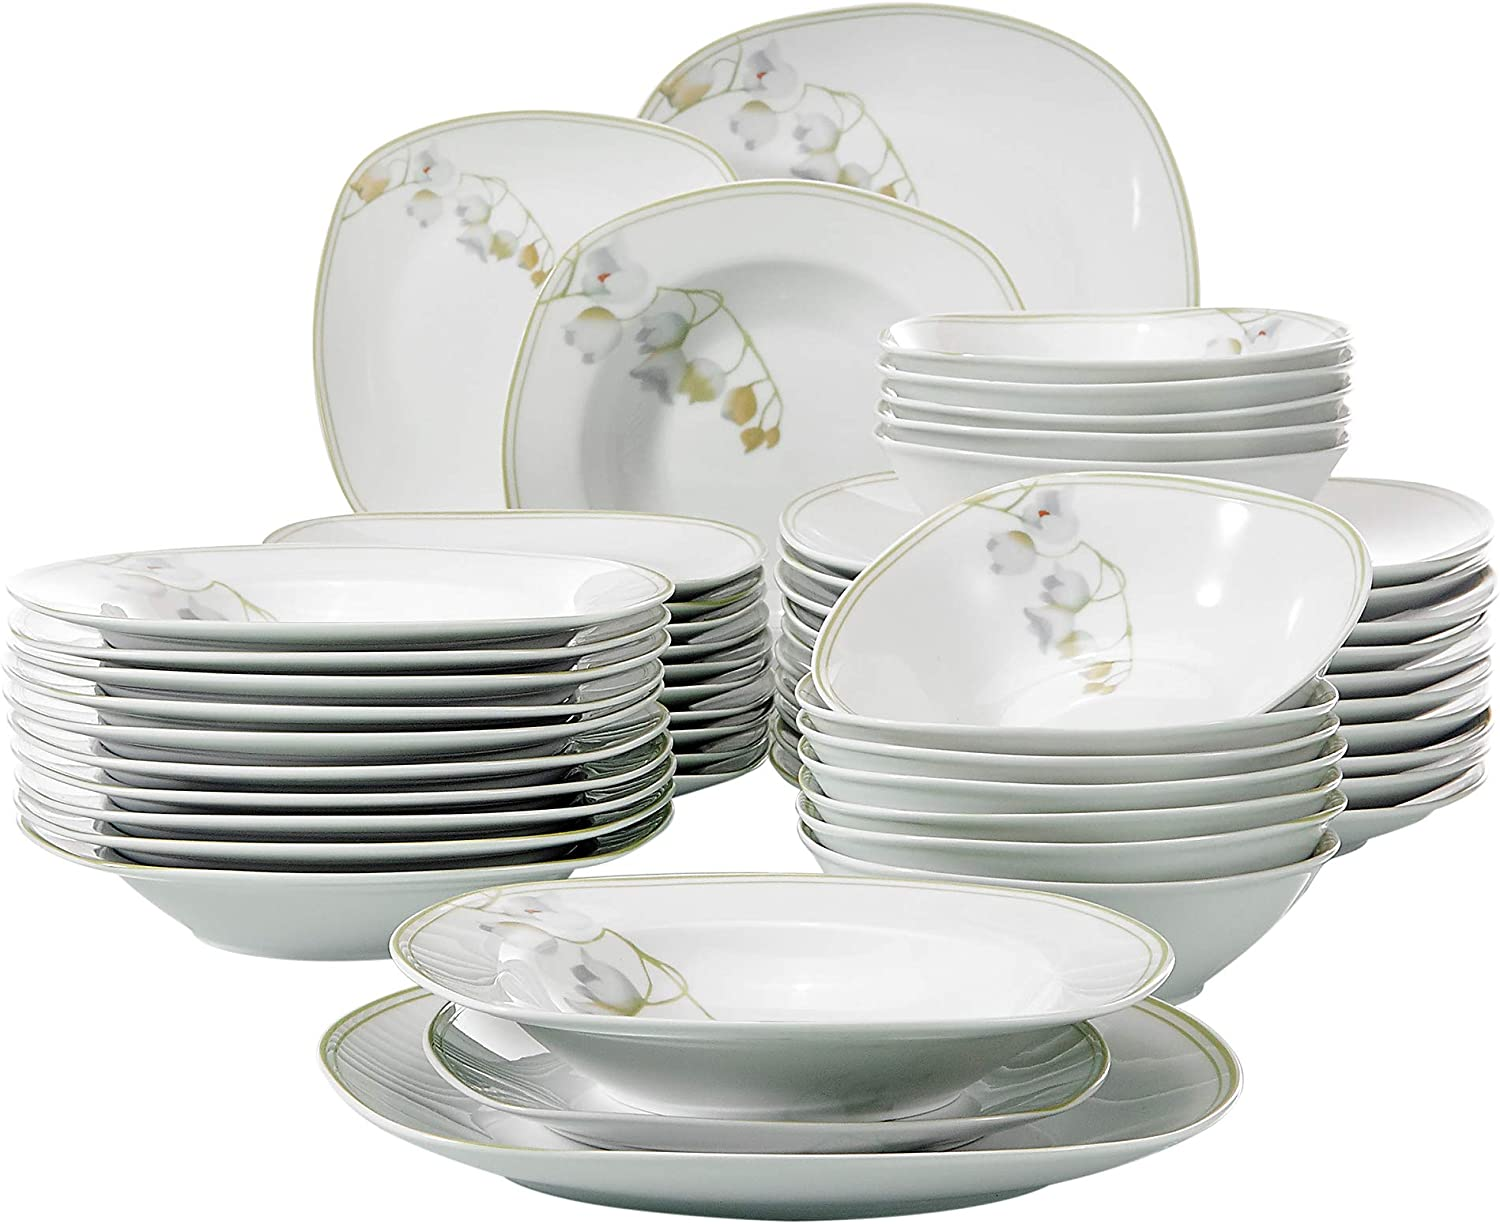 VEWEET Emily 48-Piece Ivory and Green Dinner Set Porcelain Bellflower Tableware Set with Bowls Dessert Plates Soup Plates Dinner Plates Service for 12